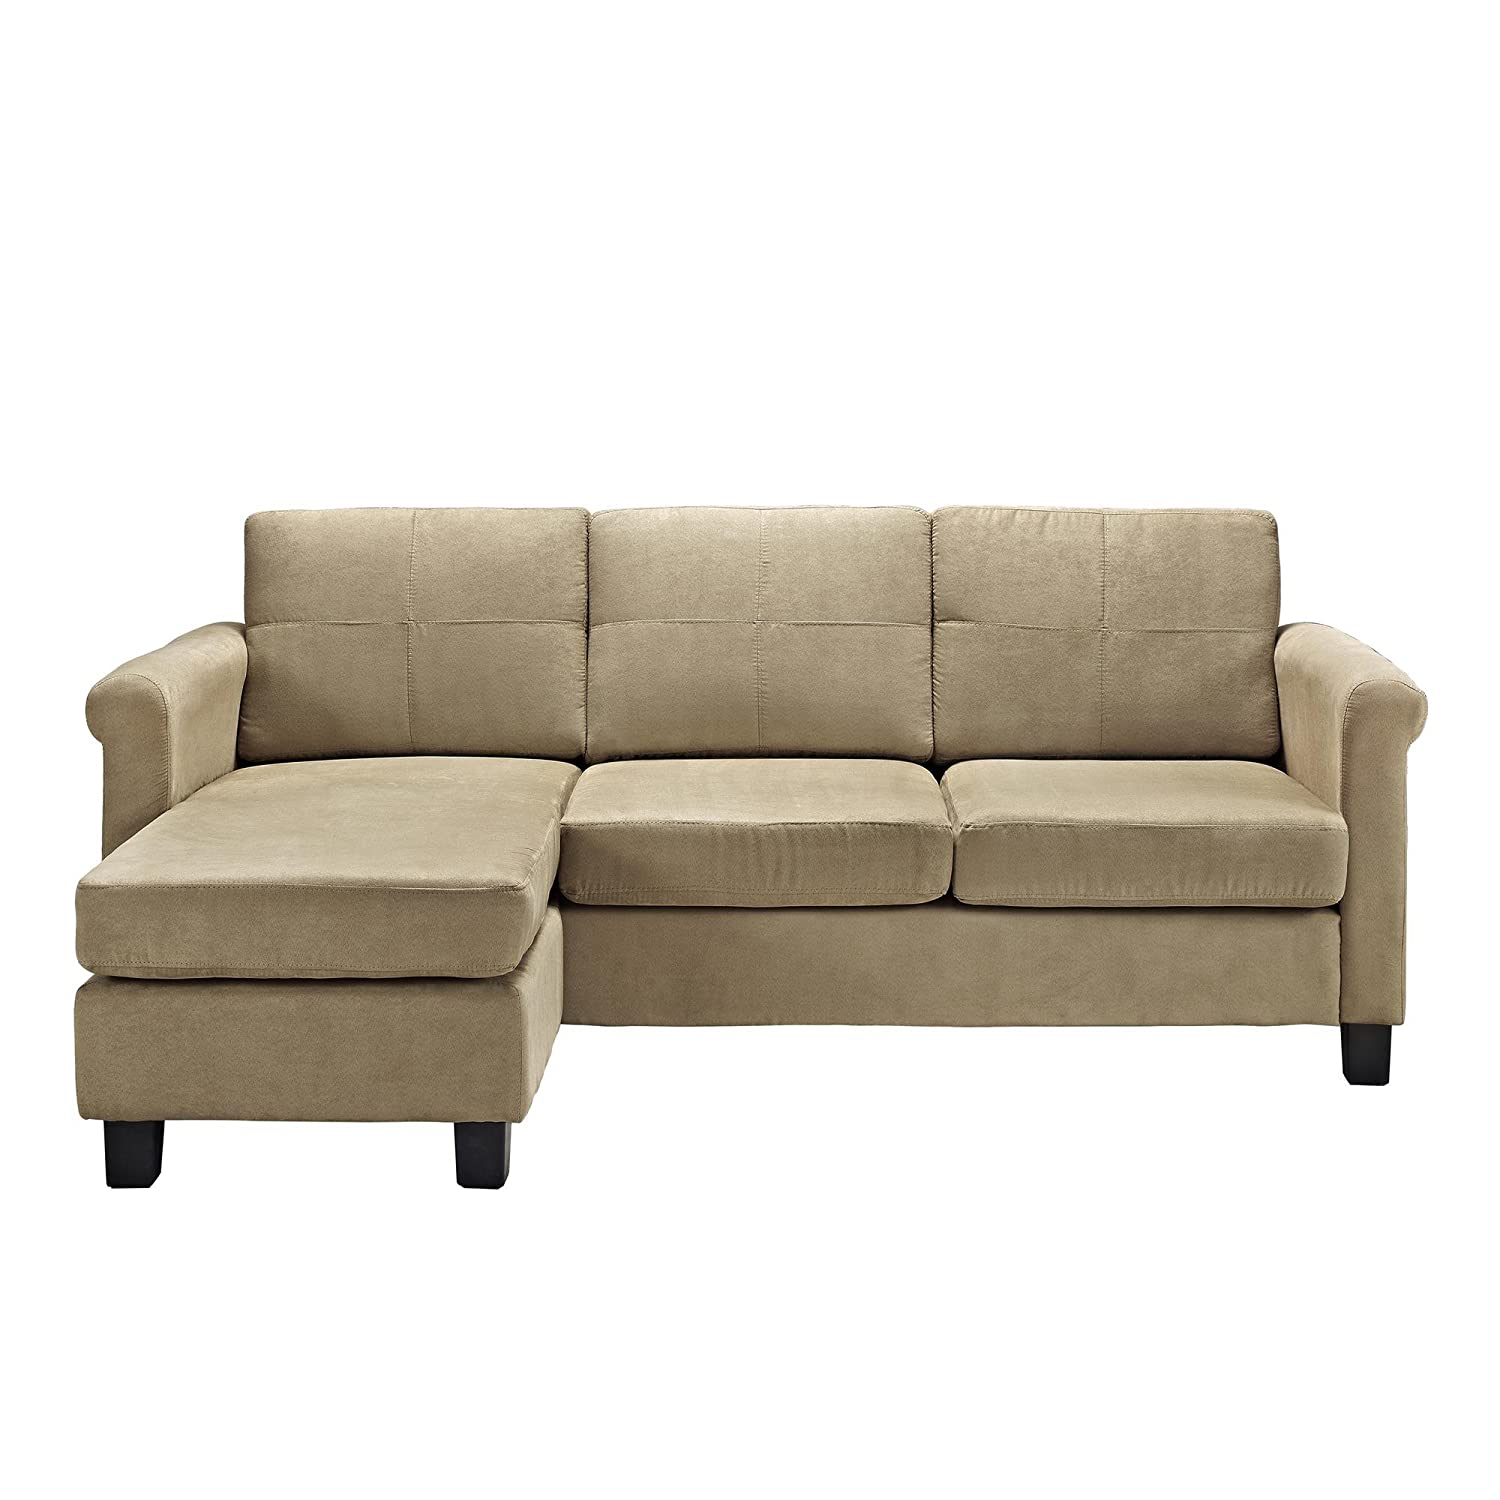 Awesome small spaces configurable sectional sofa amazon for Small sectional sofa amazon